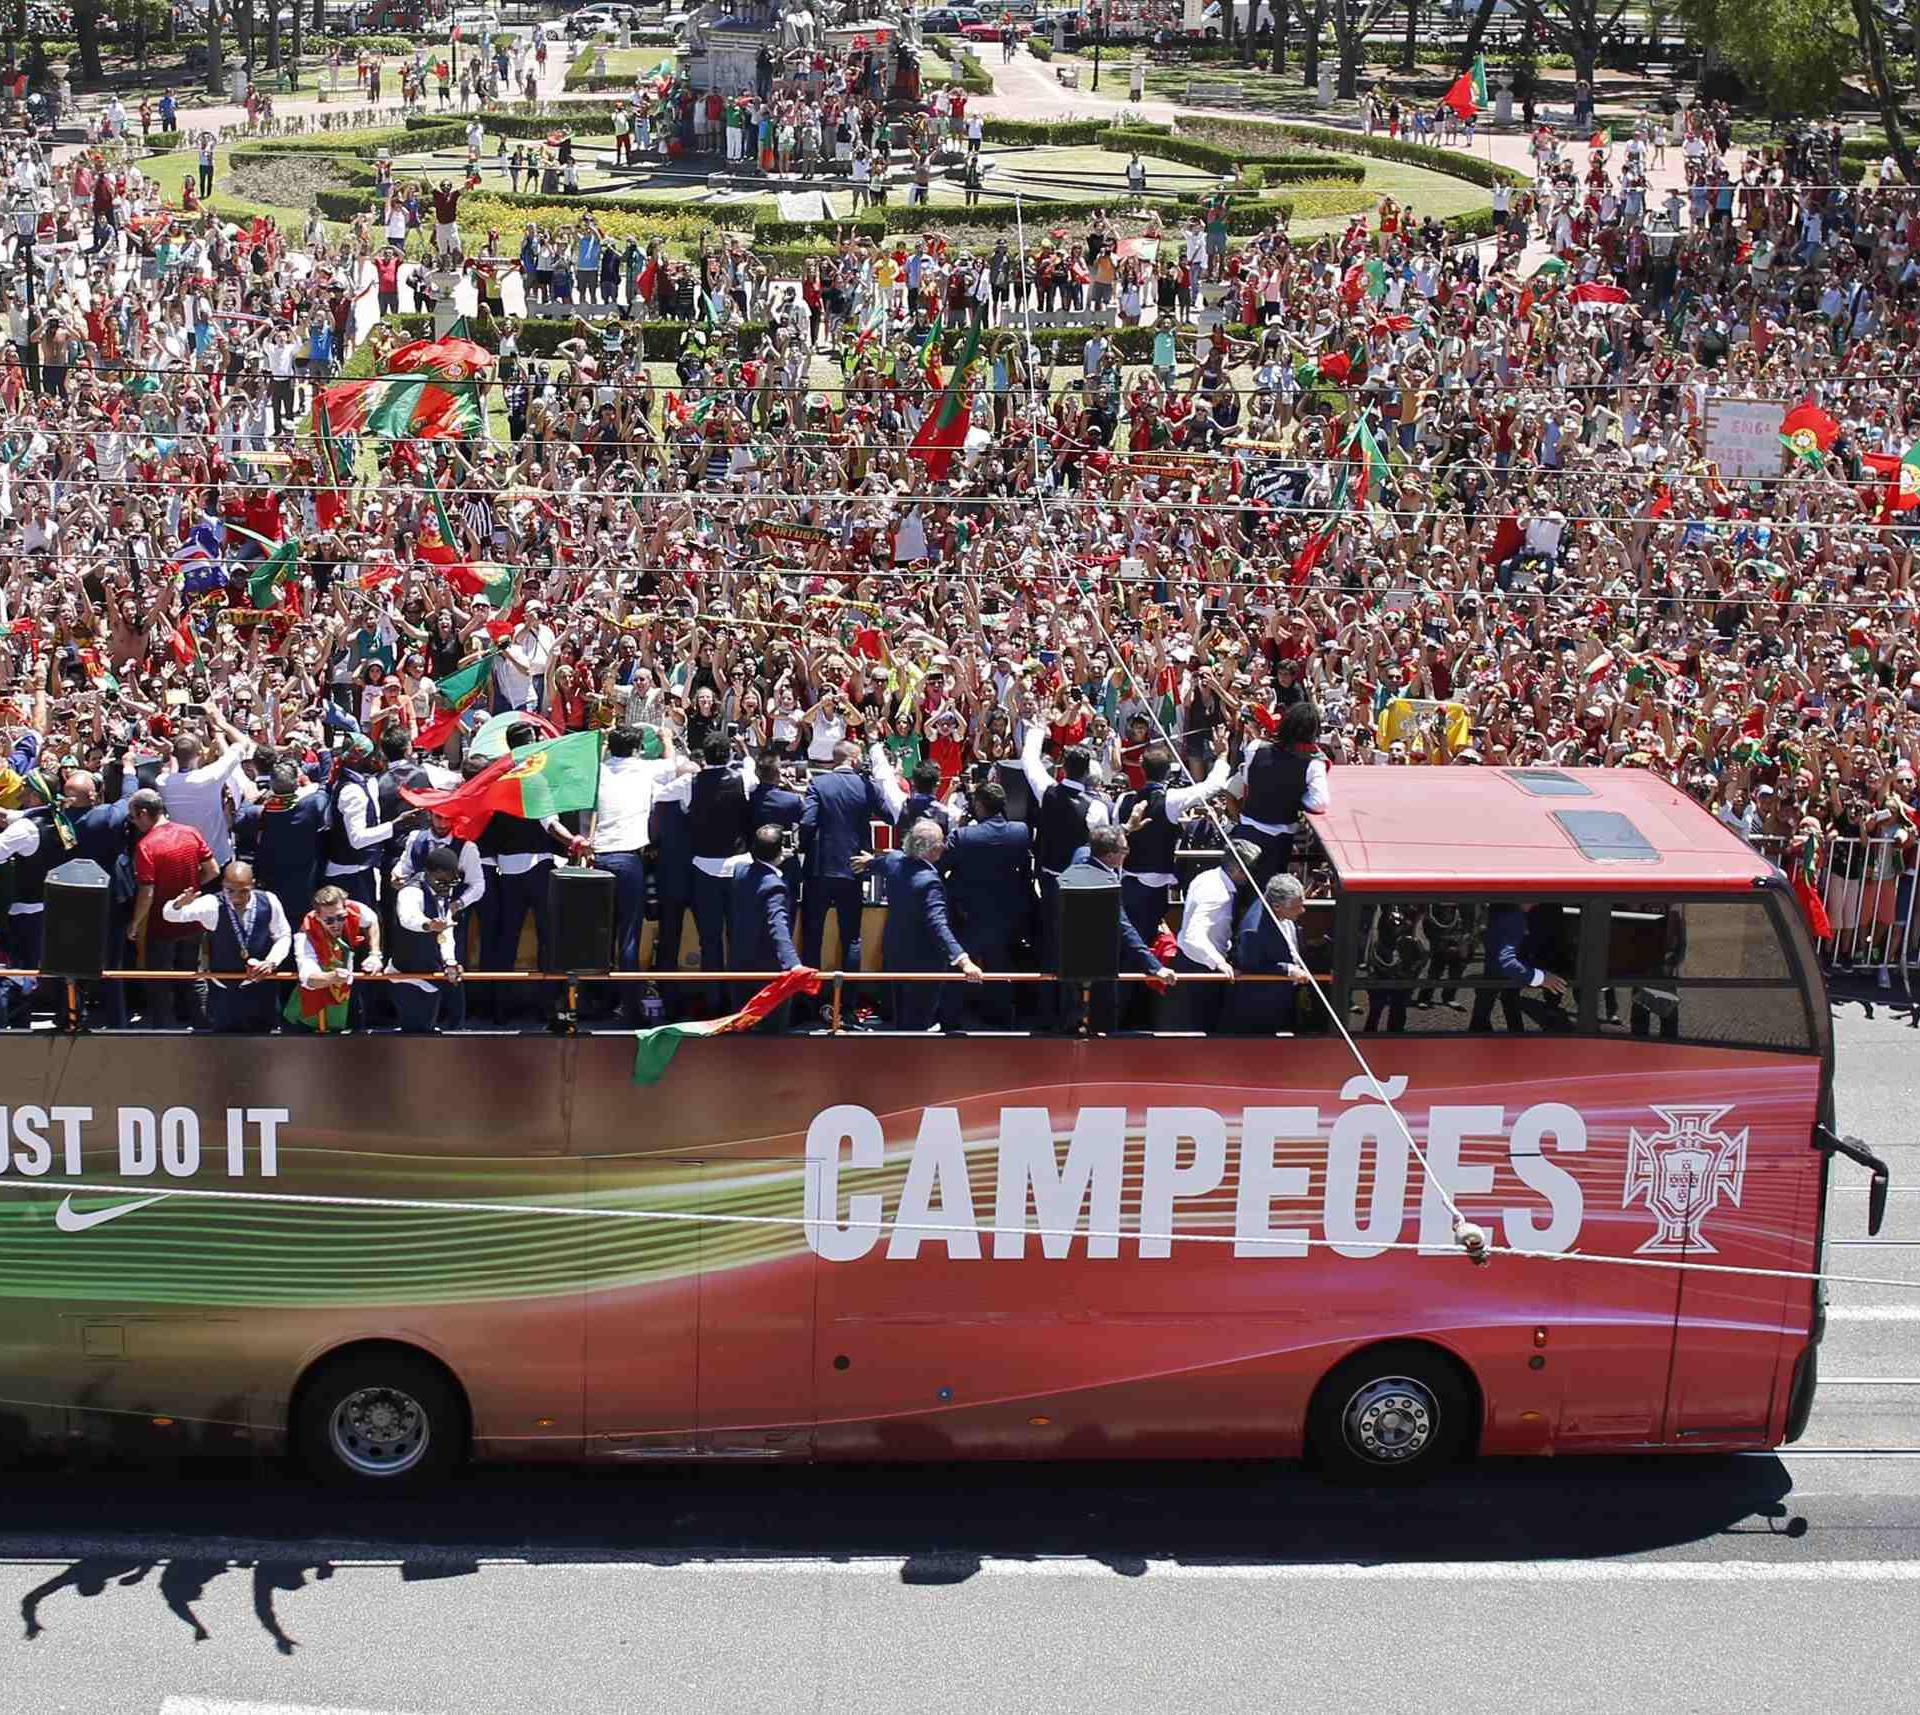 Portugal EURO 2016 team ride in open bus on their return to Lisbon